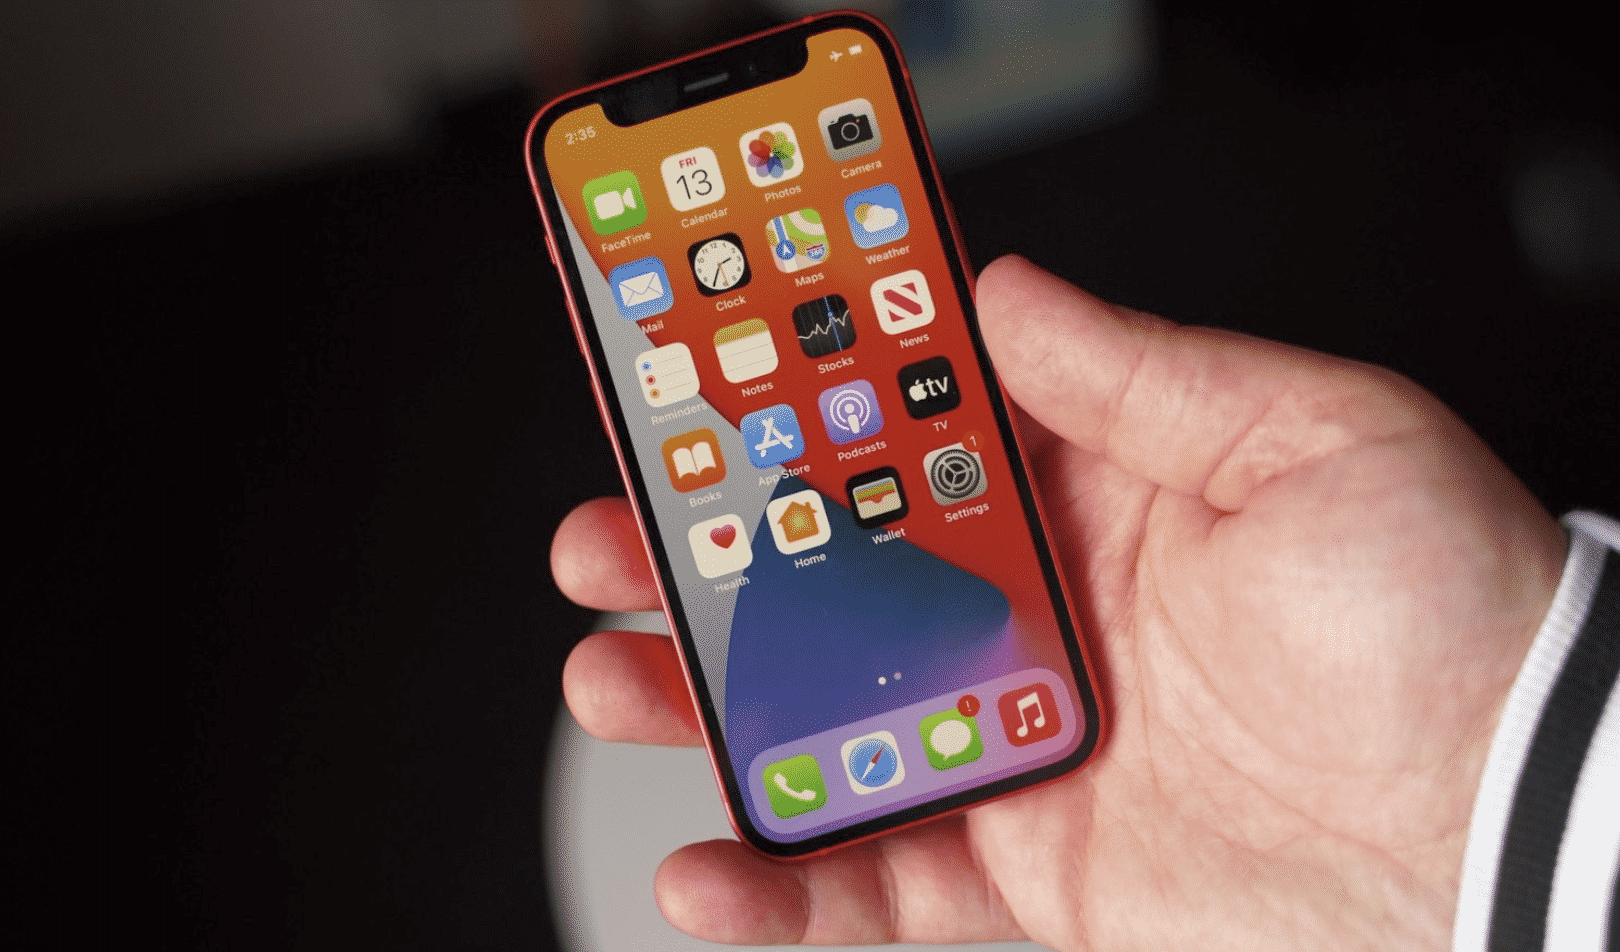 iPhone 12 Mini make up only 5% of 2020 iPhone sales in January